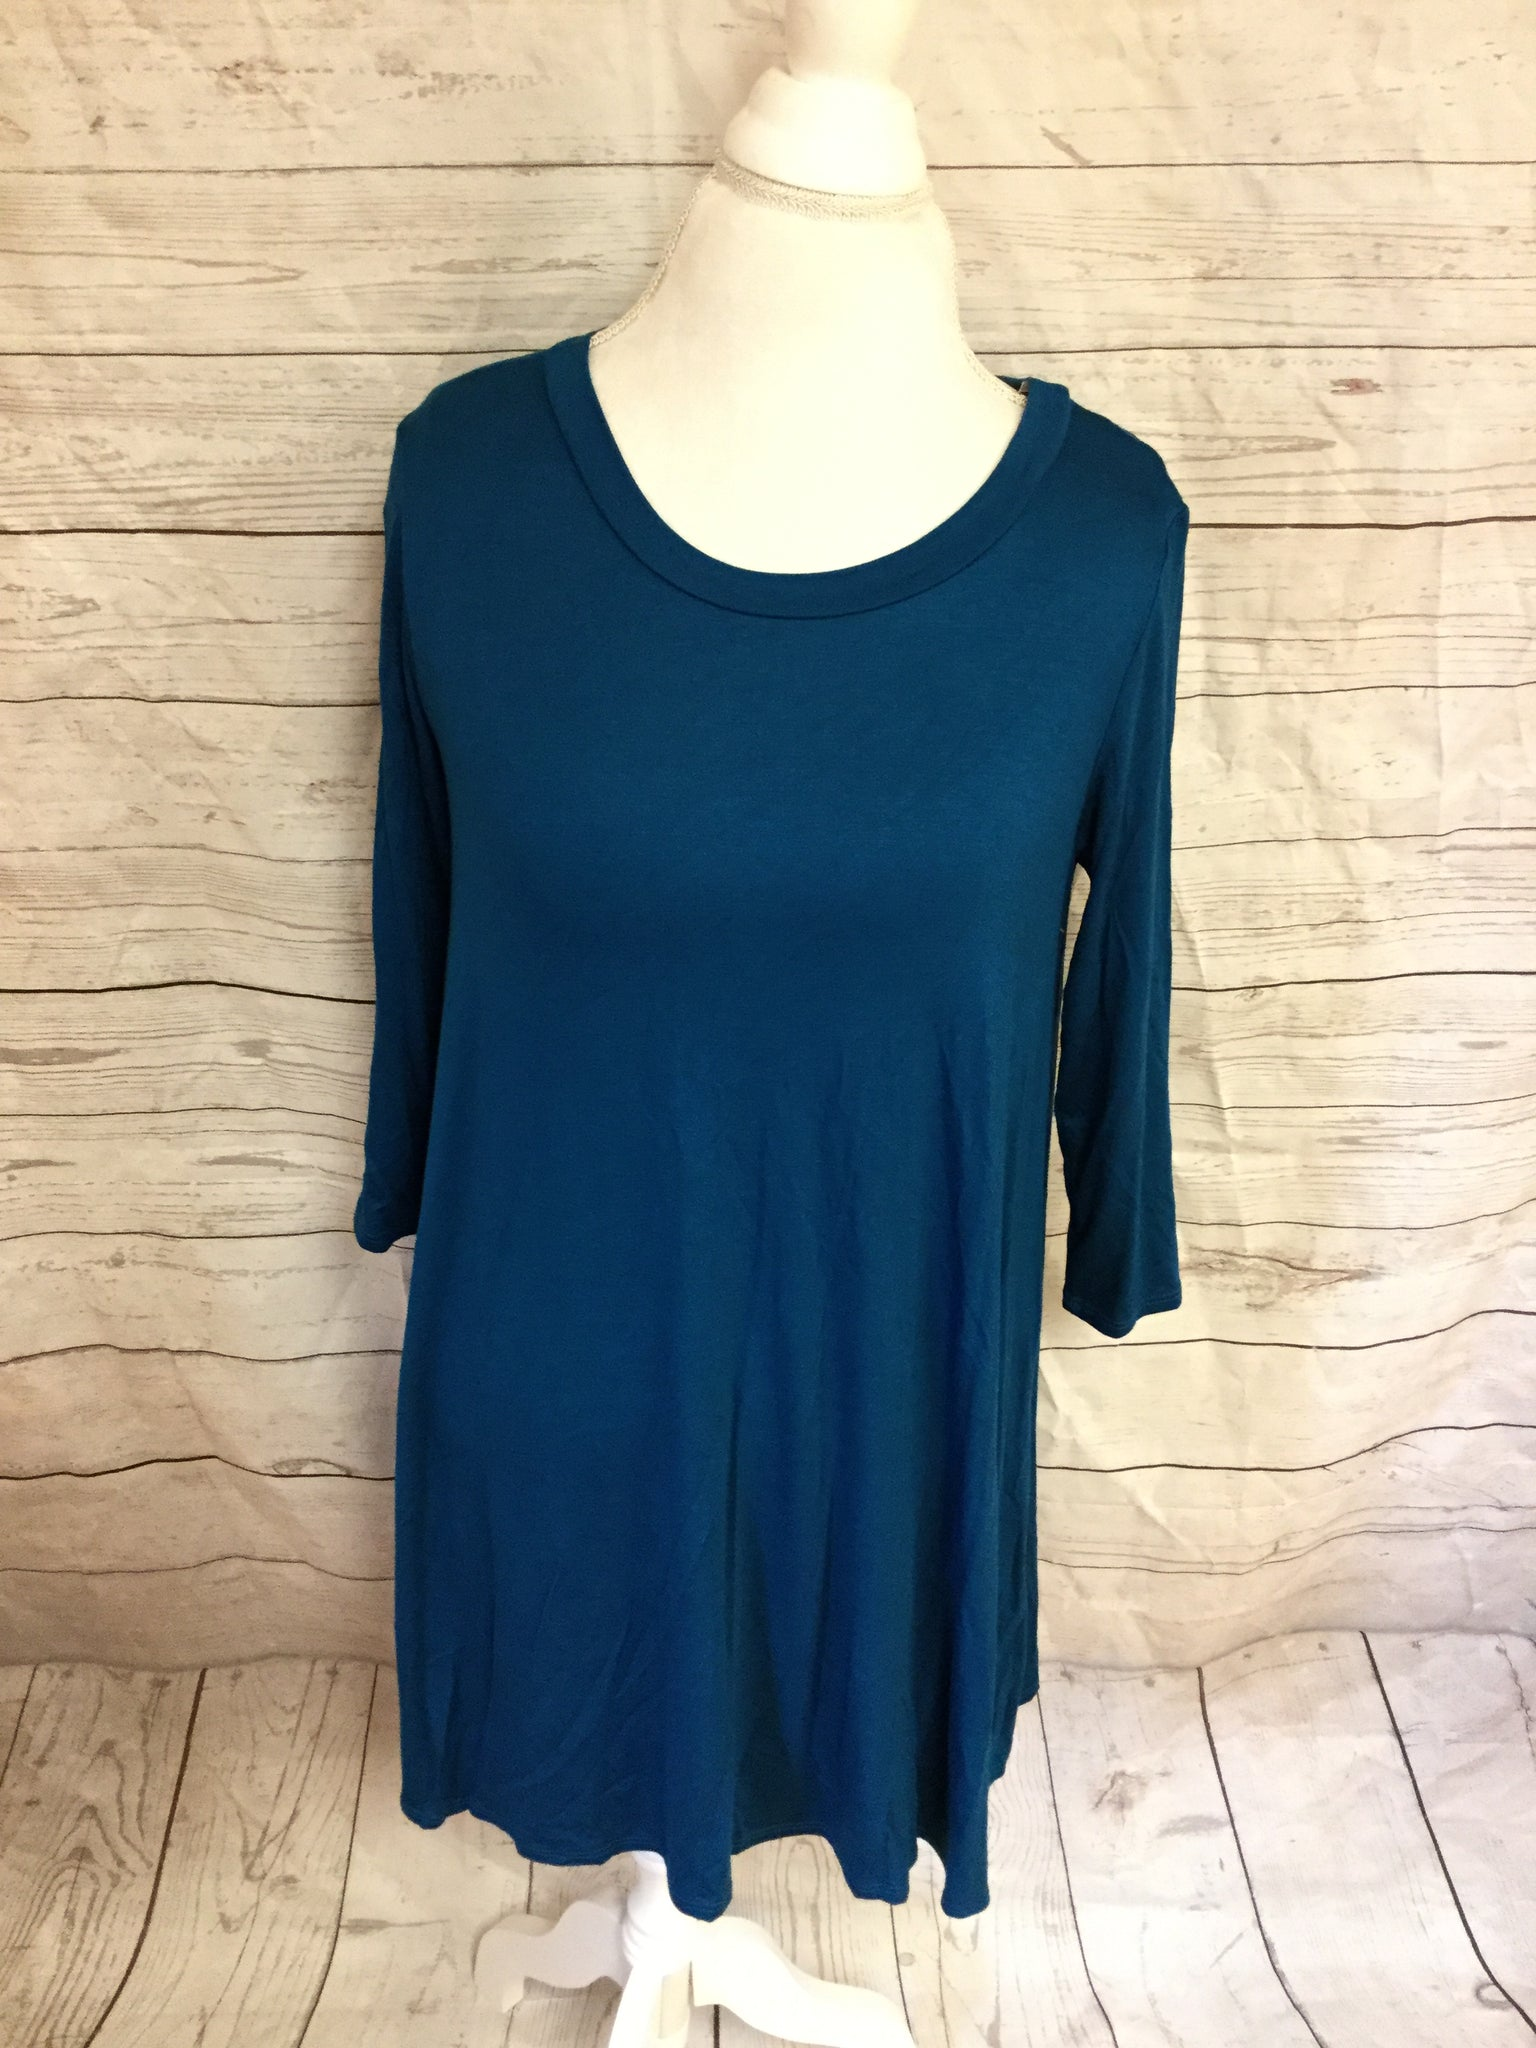 Teal A Line 3/4 Sleeve Over Sized Tunic